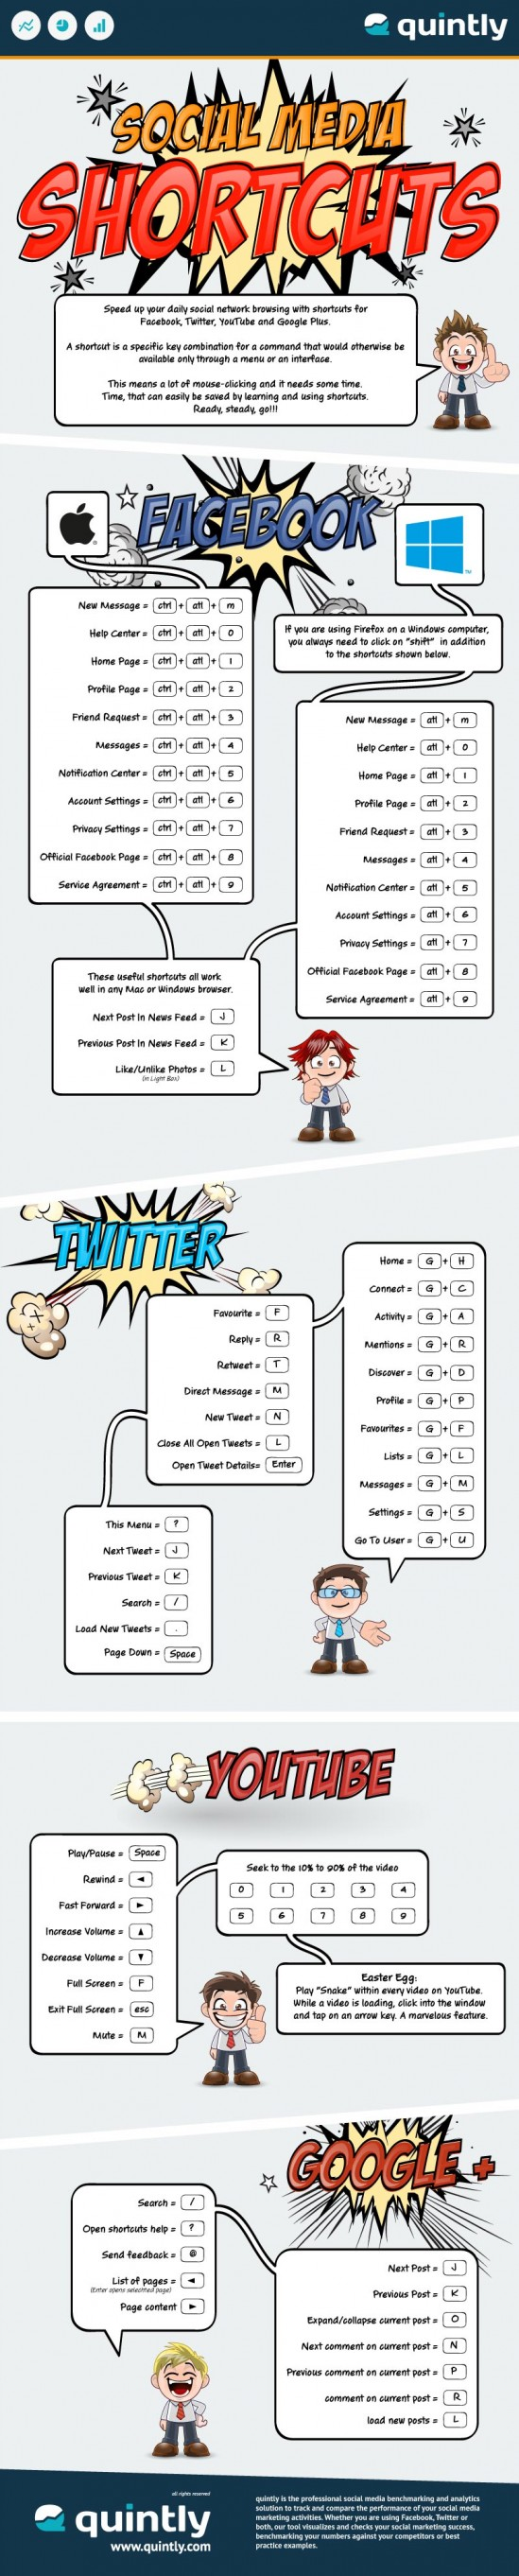 raccourcis-clavier-facebook-infographie